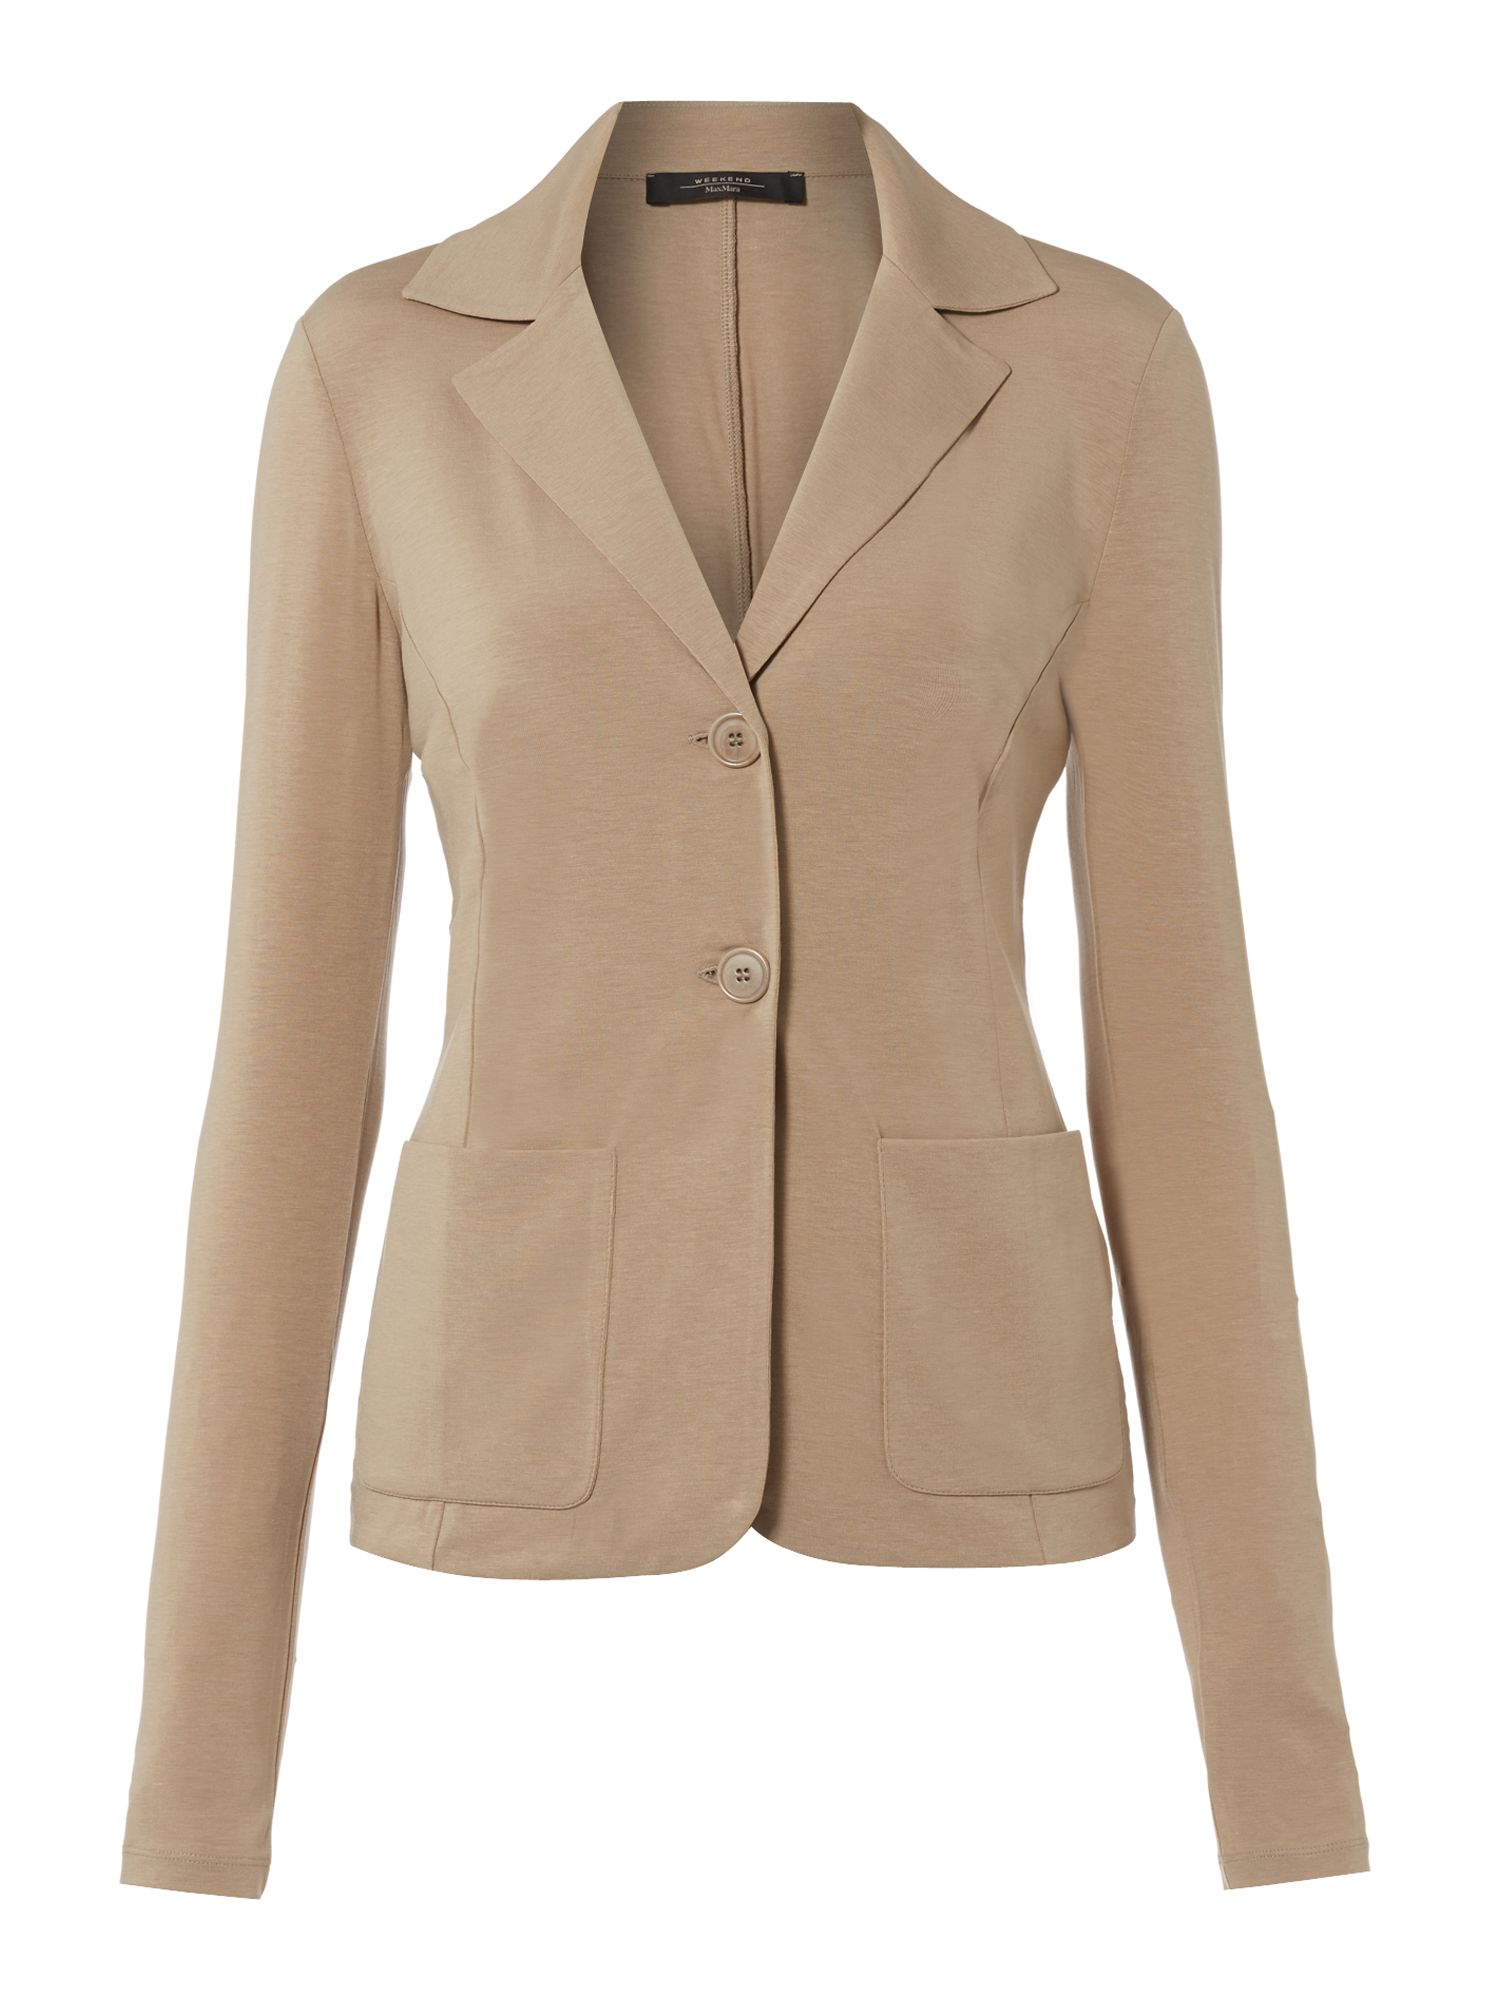 Verres jersey blazer with front pockets